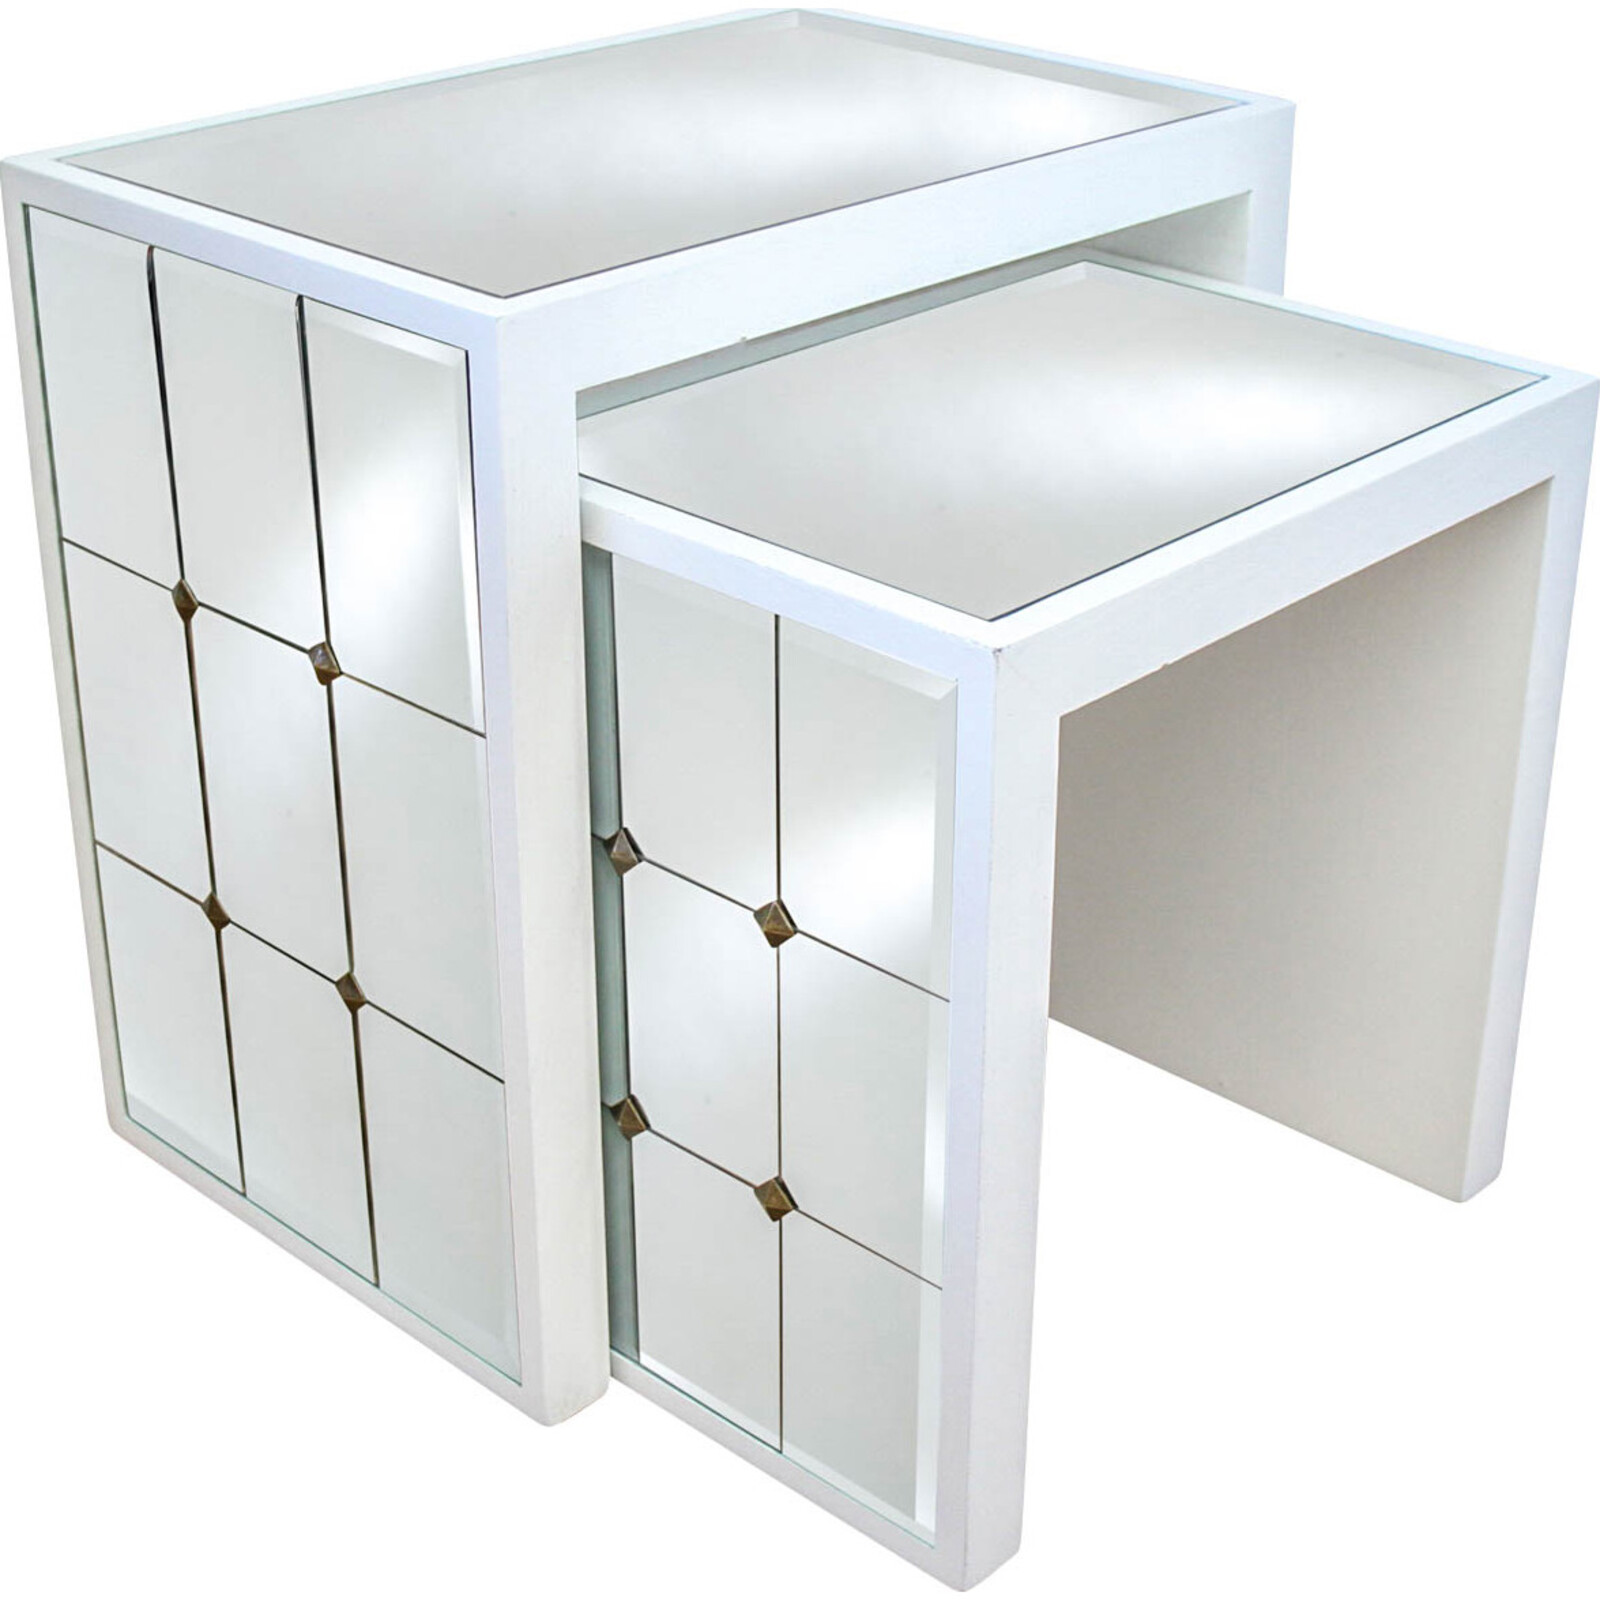 # Side Table S/2 Mirrored Cheval